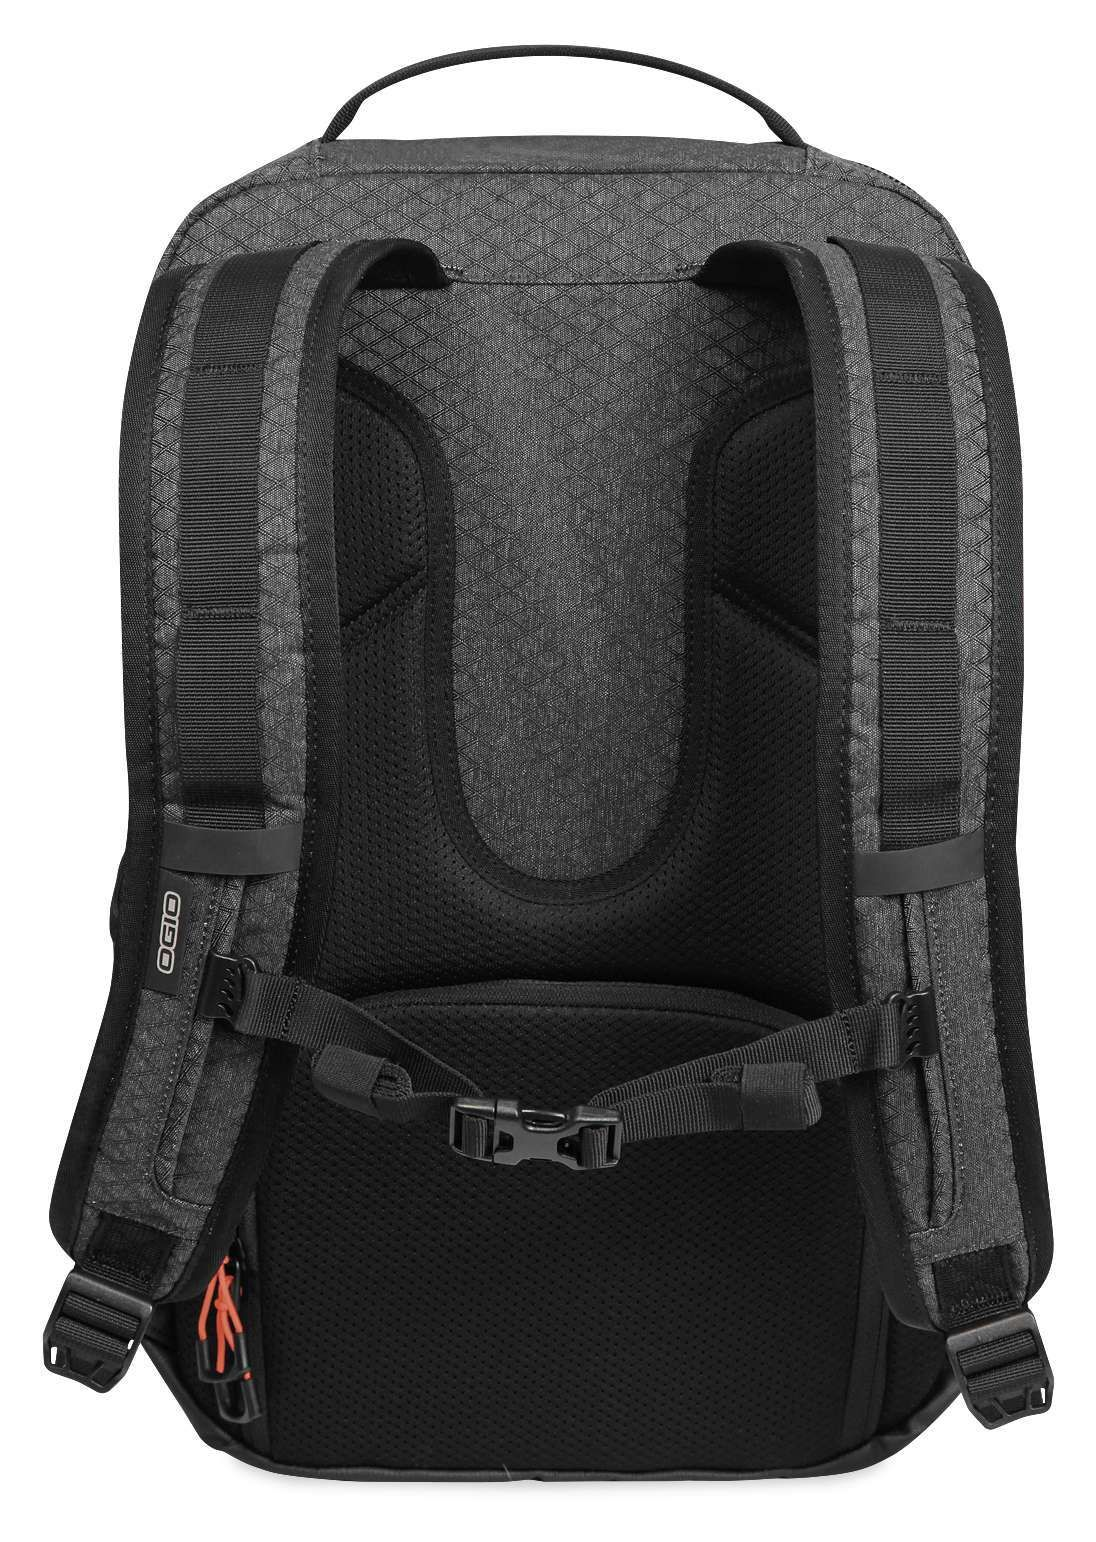 OGIO Access Pack | 20% ($23.99) Off! - RevZilla